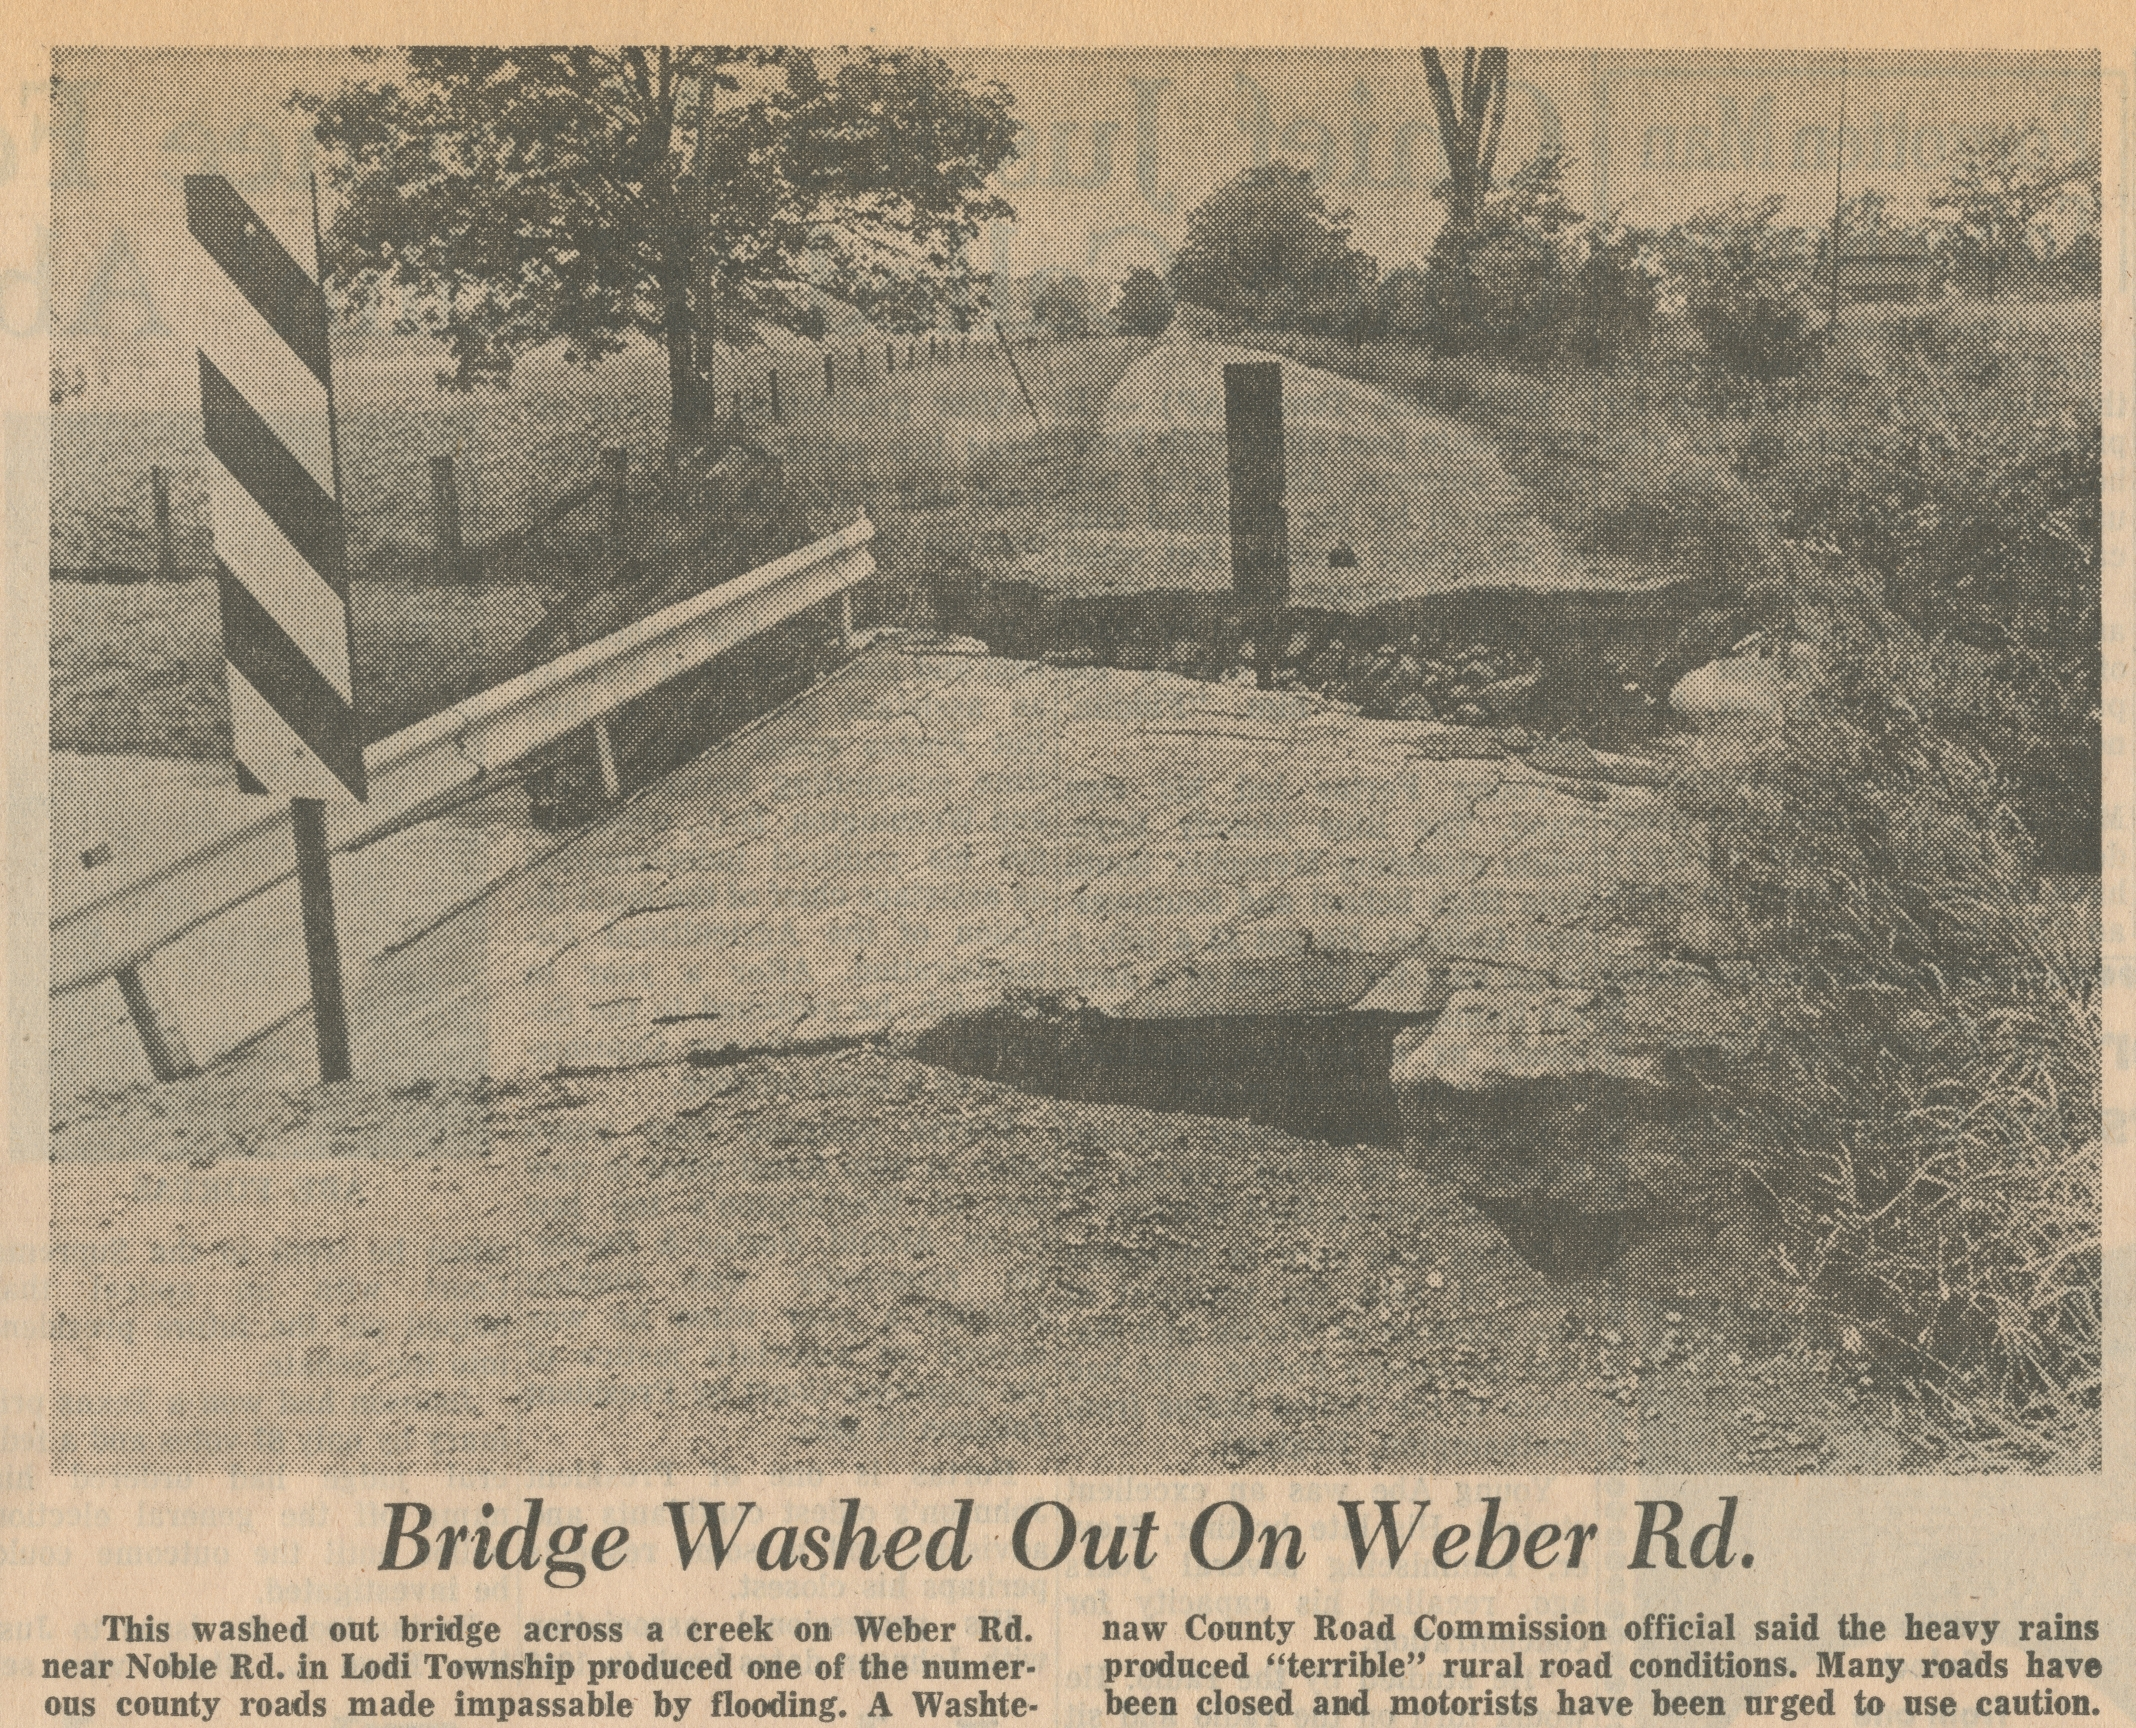 Bridge Washed Out On Weber Rd image